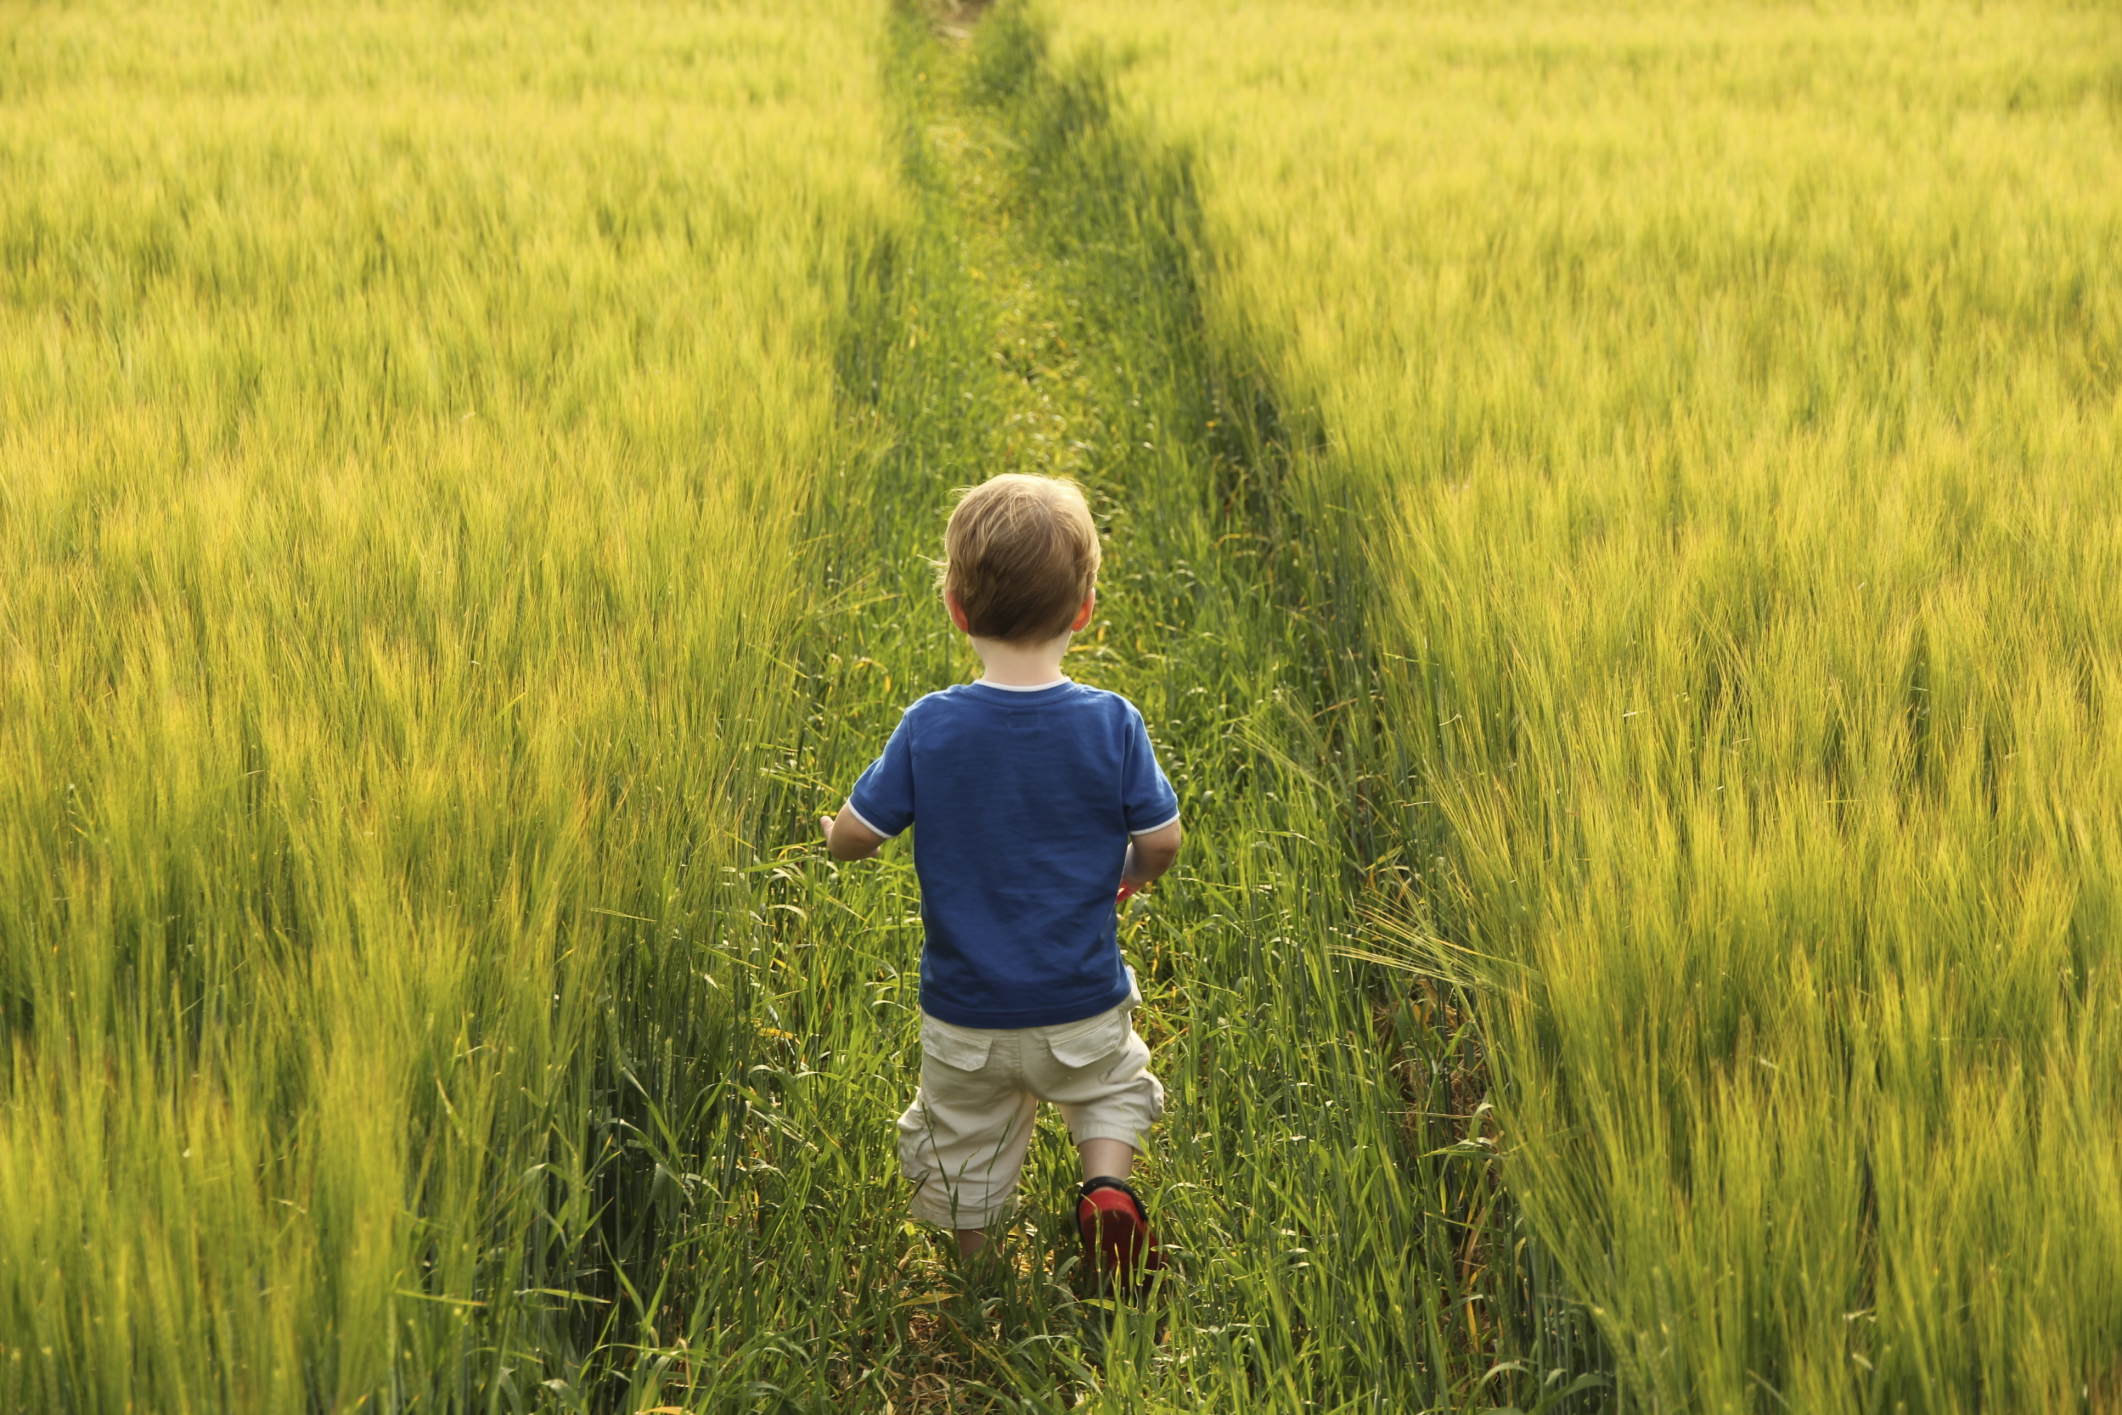 Small boy walking through barley field